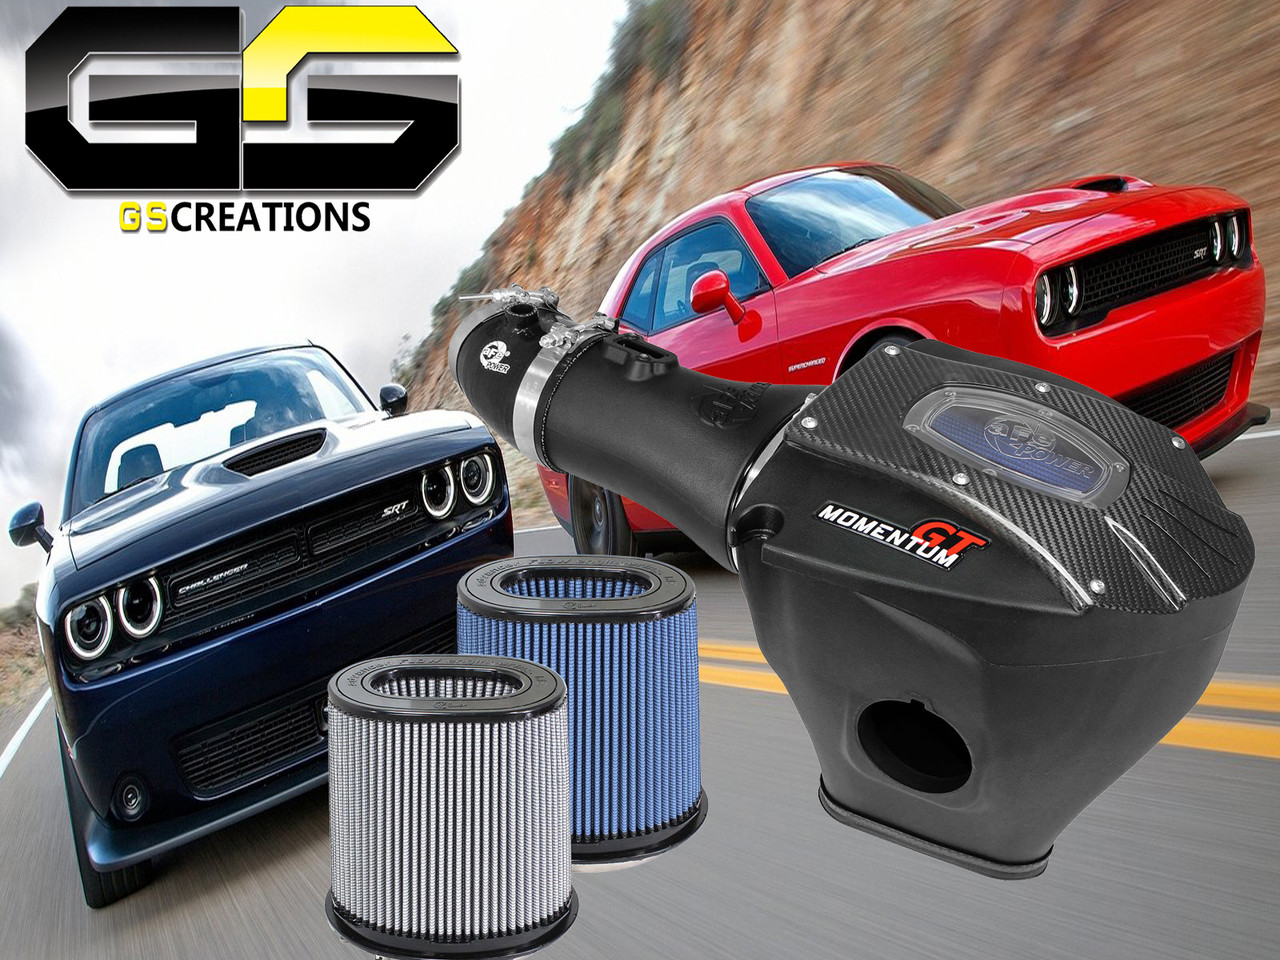 Dodge Challenger Charger Srt Hellcat Afe Cold Air Intake System W C7 Corvette Painted Fuse Box Cover Image 1